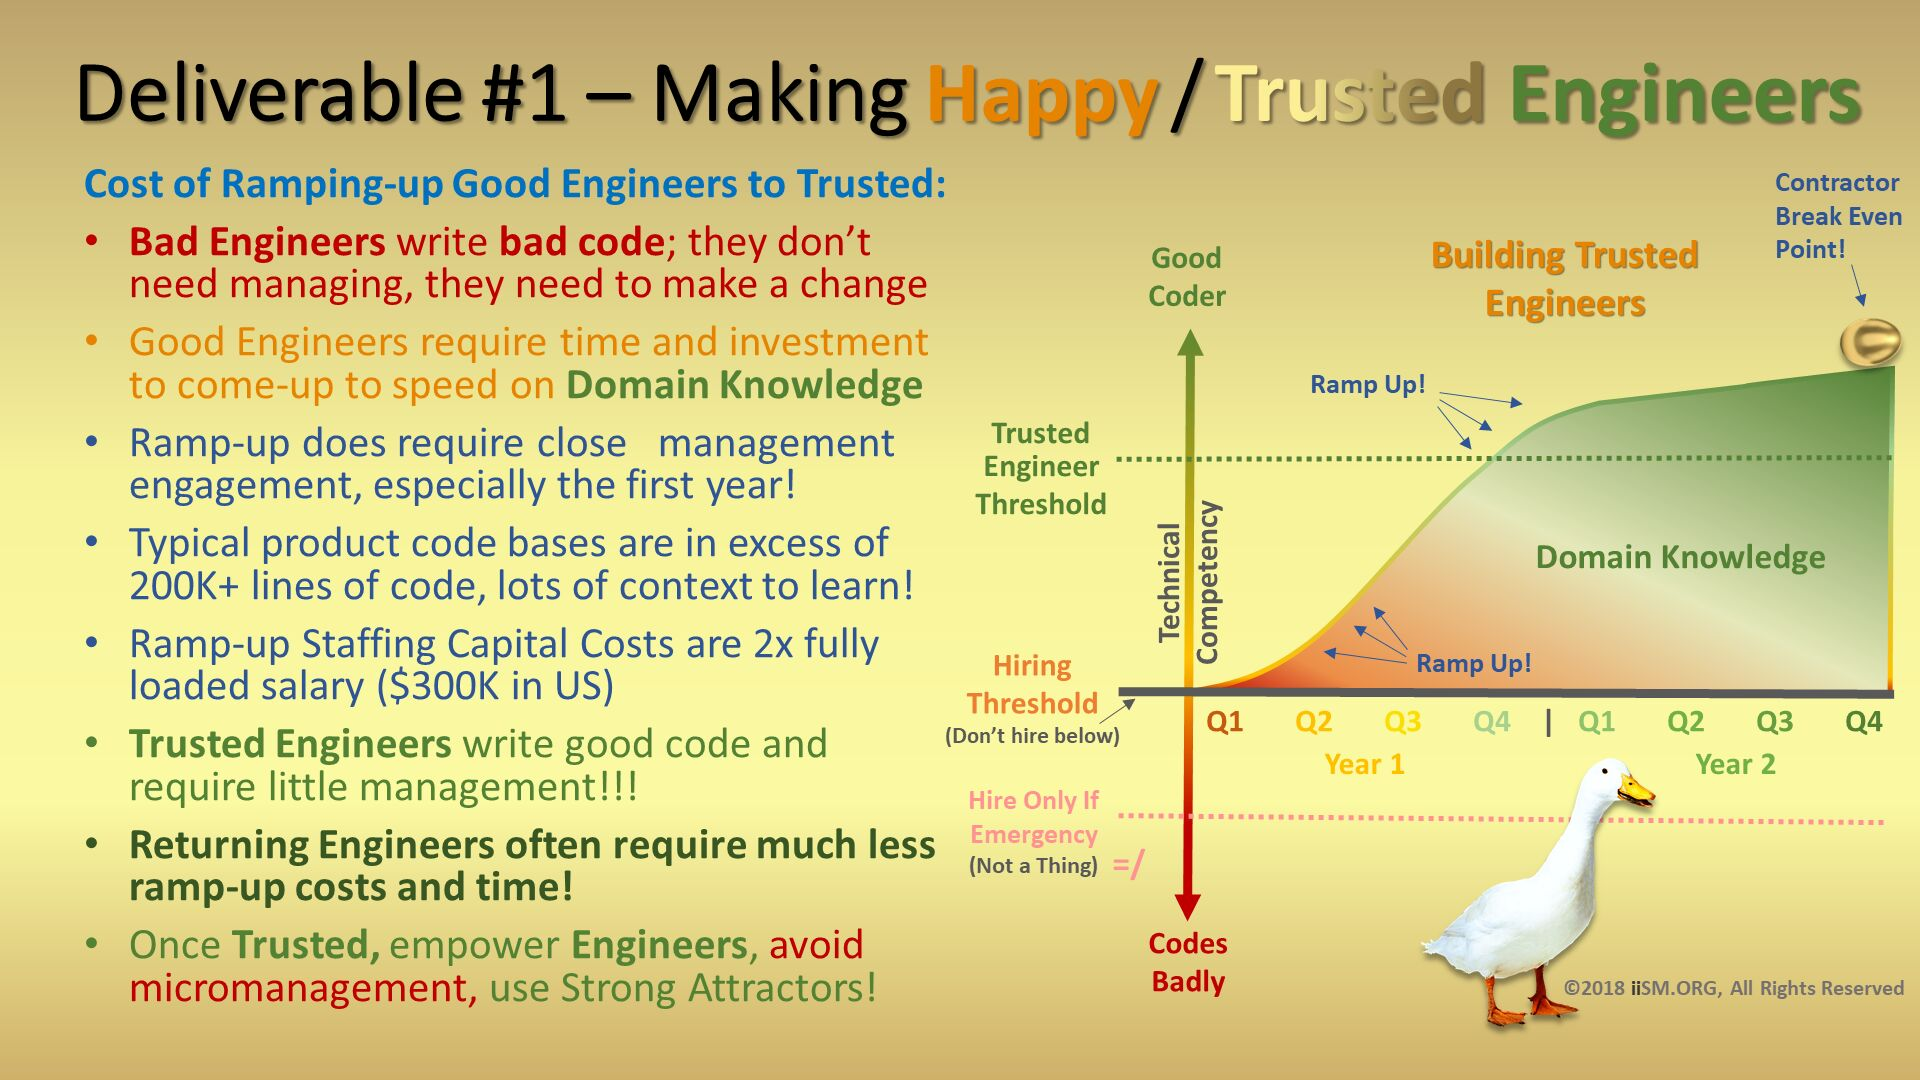 Deliverable #1 – Making Happy / Trusted Engineers. Cost of Ramping-up Good Engineers to Trusted: Bad Engineers write bad code; they don't need managing, they need to make a change Good Engineers require time and investment to come-up to speed on Domain Knowledge Ramp-up does require close   management engagement, especially the first year! Typical product code bases are in excess of 200K+ lines of code, lots of context to learn! Ramp-up Staffing Capital Costs are 2x fully loaded salary ($300K in US) Trusted Engineers write good code and require little management!!! Returning Engineers often require much less ramp-up costs and time! Once Trusted, empower Engineers, avoid micromanagement, use Strong Attractors! . ©2018 iiSM.ORG, All Rights Reserved.  =/.